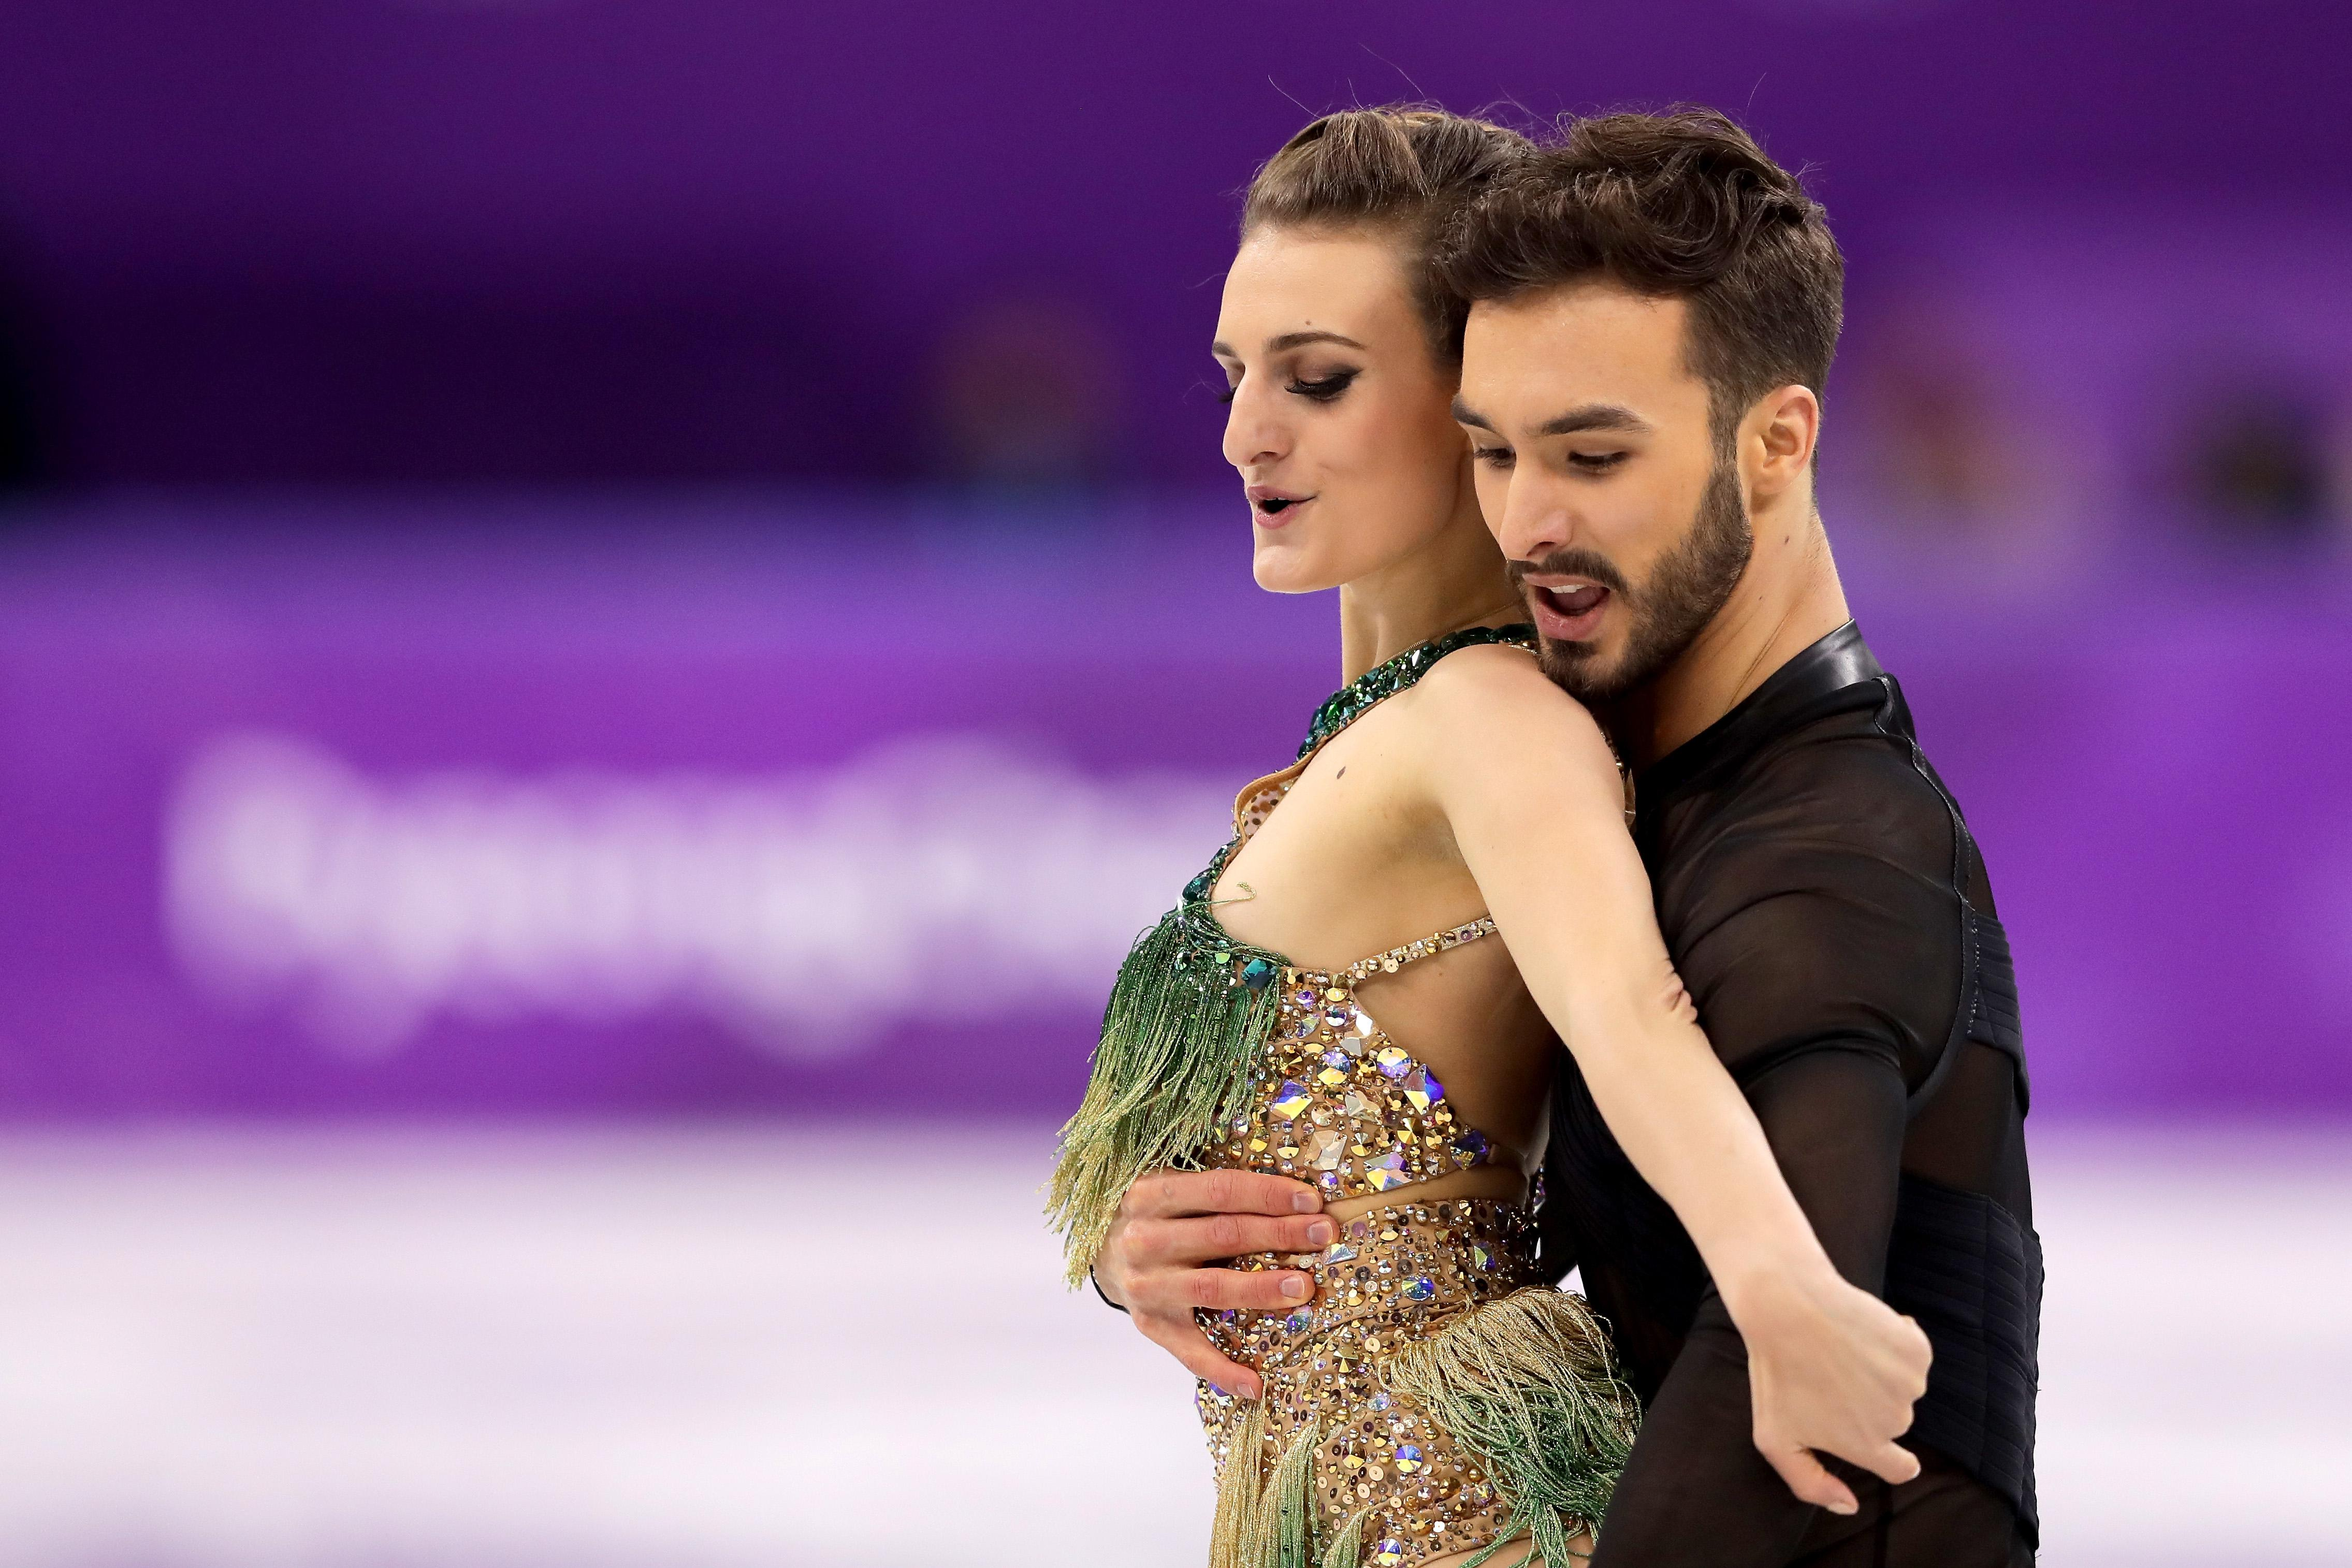 GANGNEUNG, SOUTH KOREA - FEBRUARY 19:  Gabriella Papadakis and Guillaume Cizeron of France compete during the Figure Skating Ice Dance Short Dance on day 10 of the PyeongChang 2018 Winter Olympic Games at Gangneung Ice Arena on February 19, 2018 in Pyeongchang-gun, South Korea.  (Photo by Richard Heathcote/Getty Images)